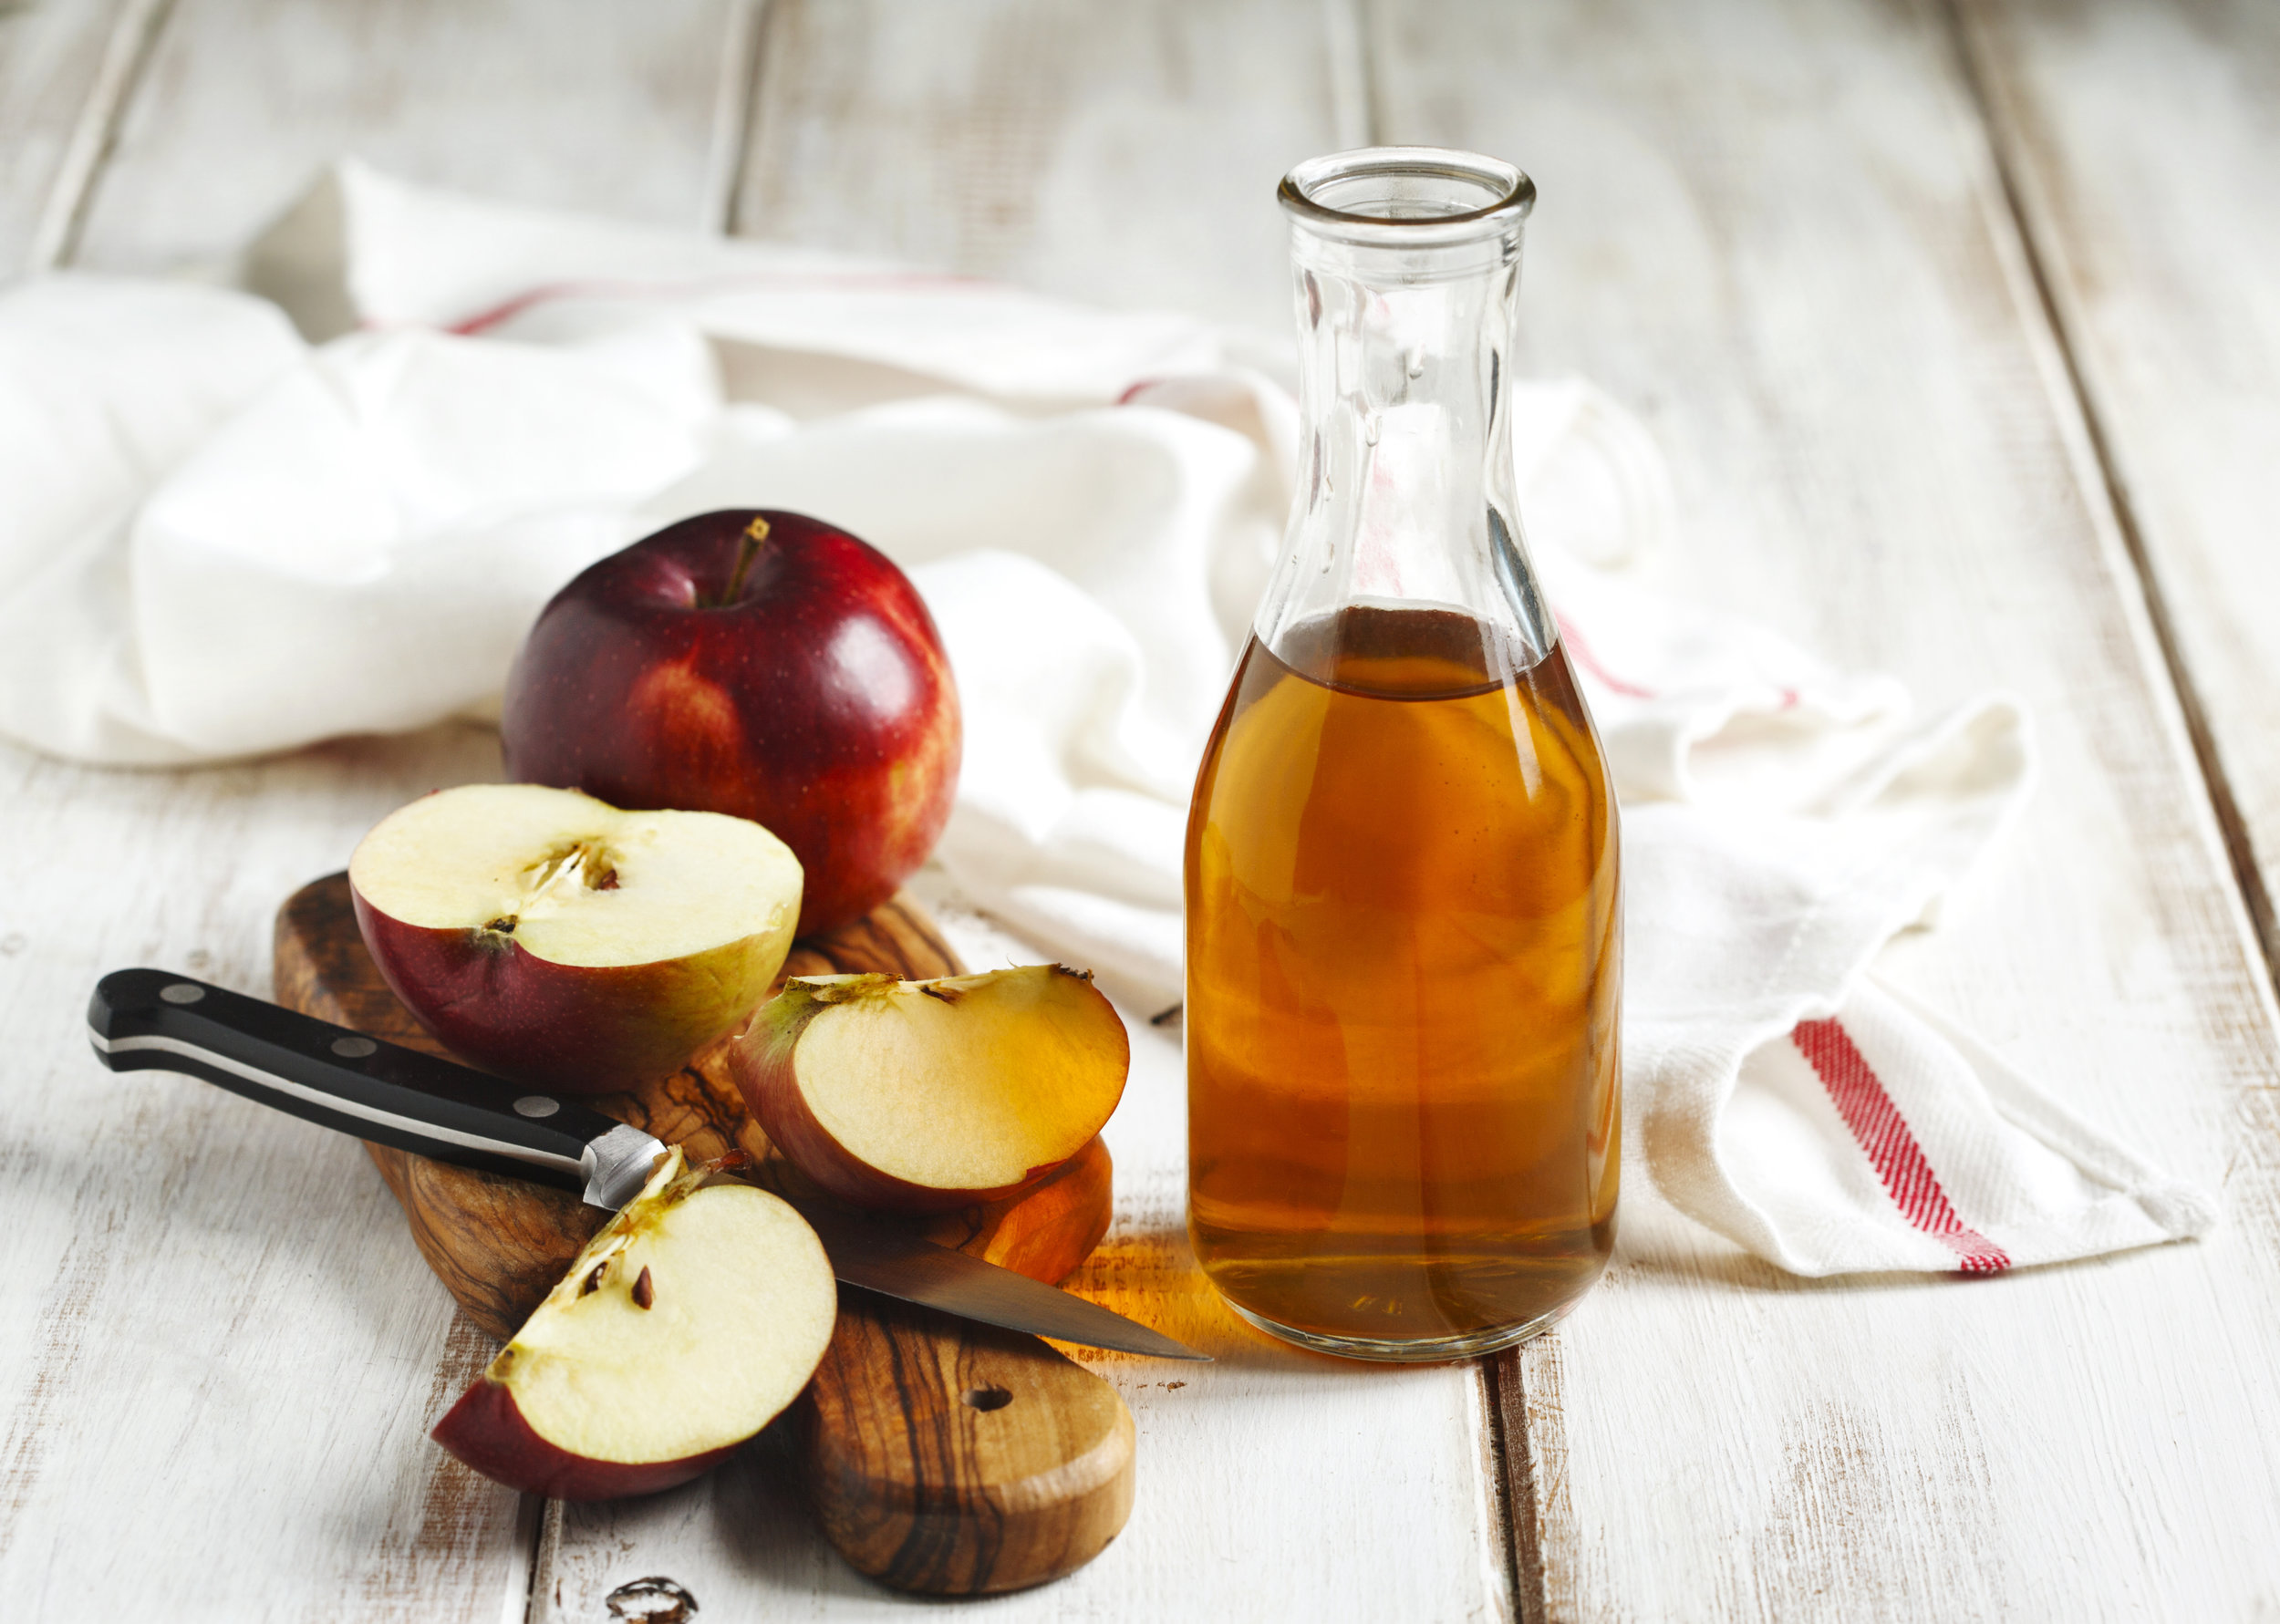 Does apple cider vinegar cure candida?